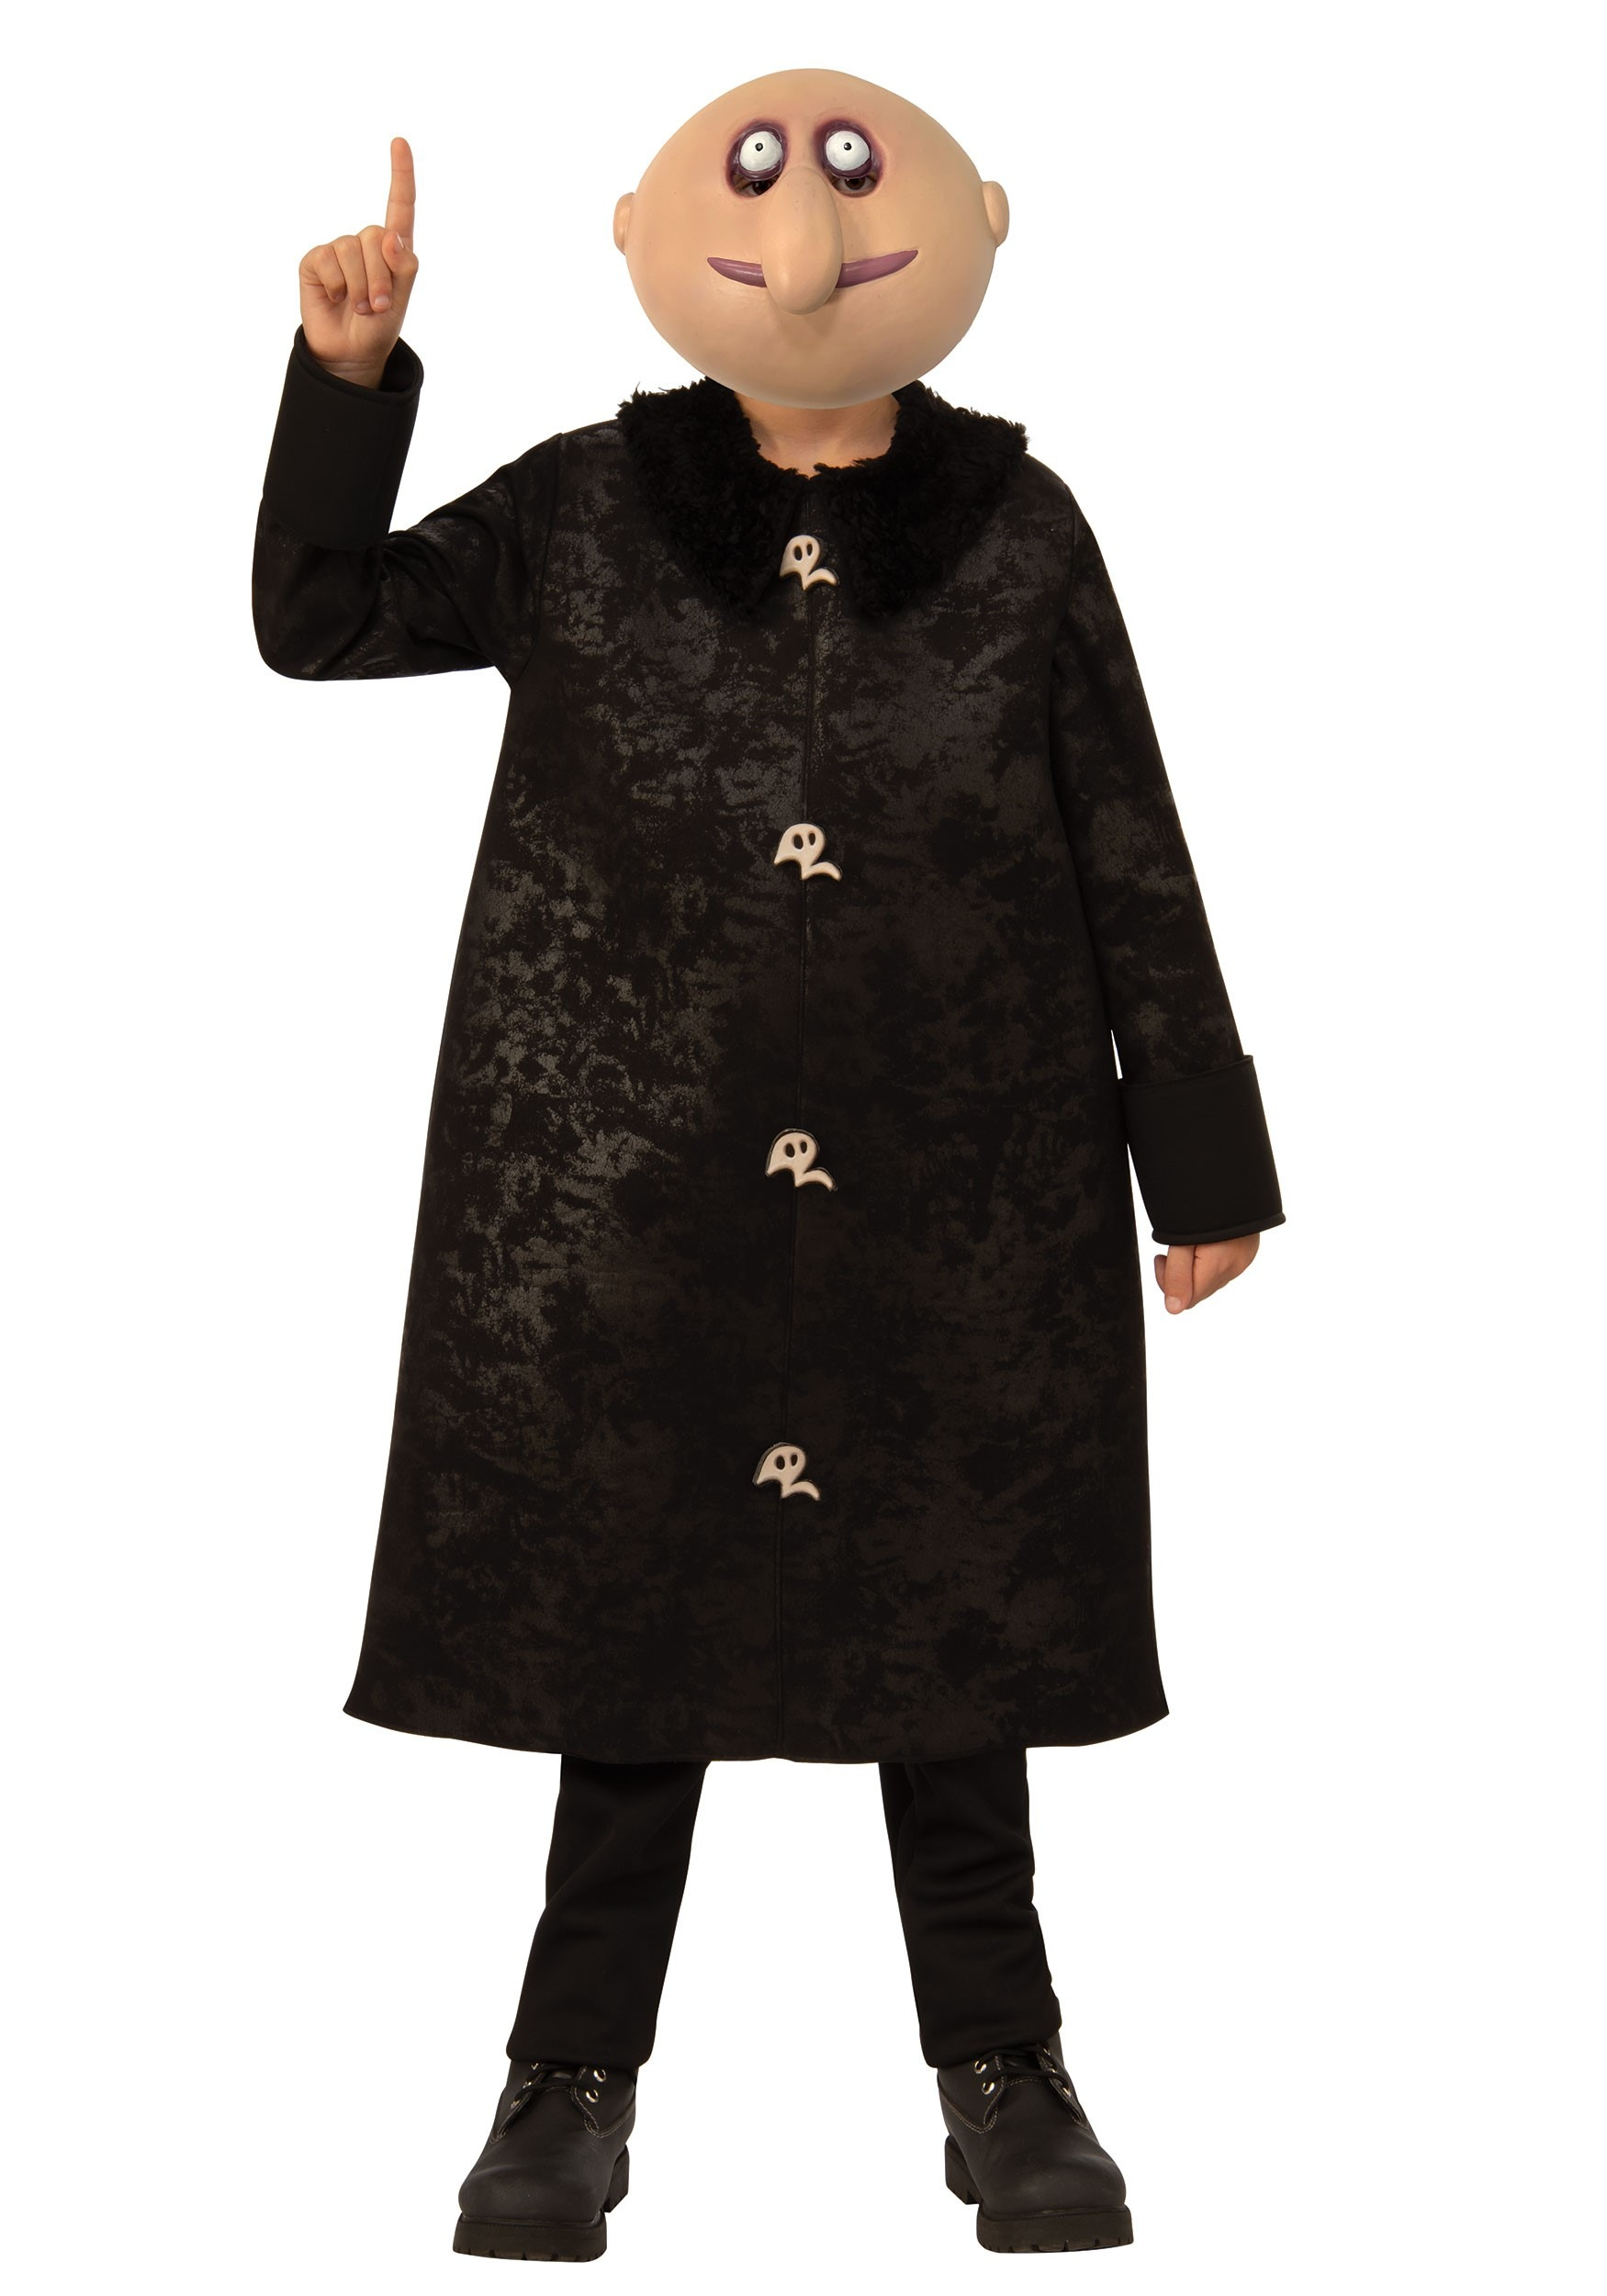 The Addams Family Fester Costume For Kids